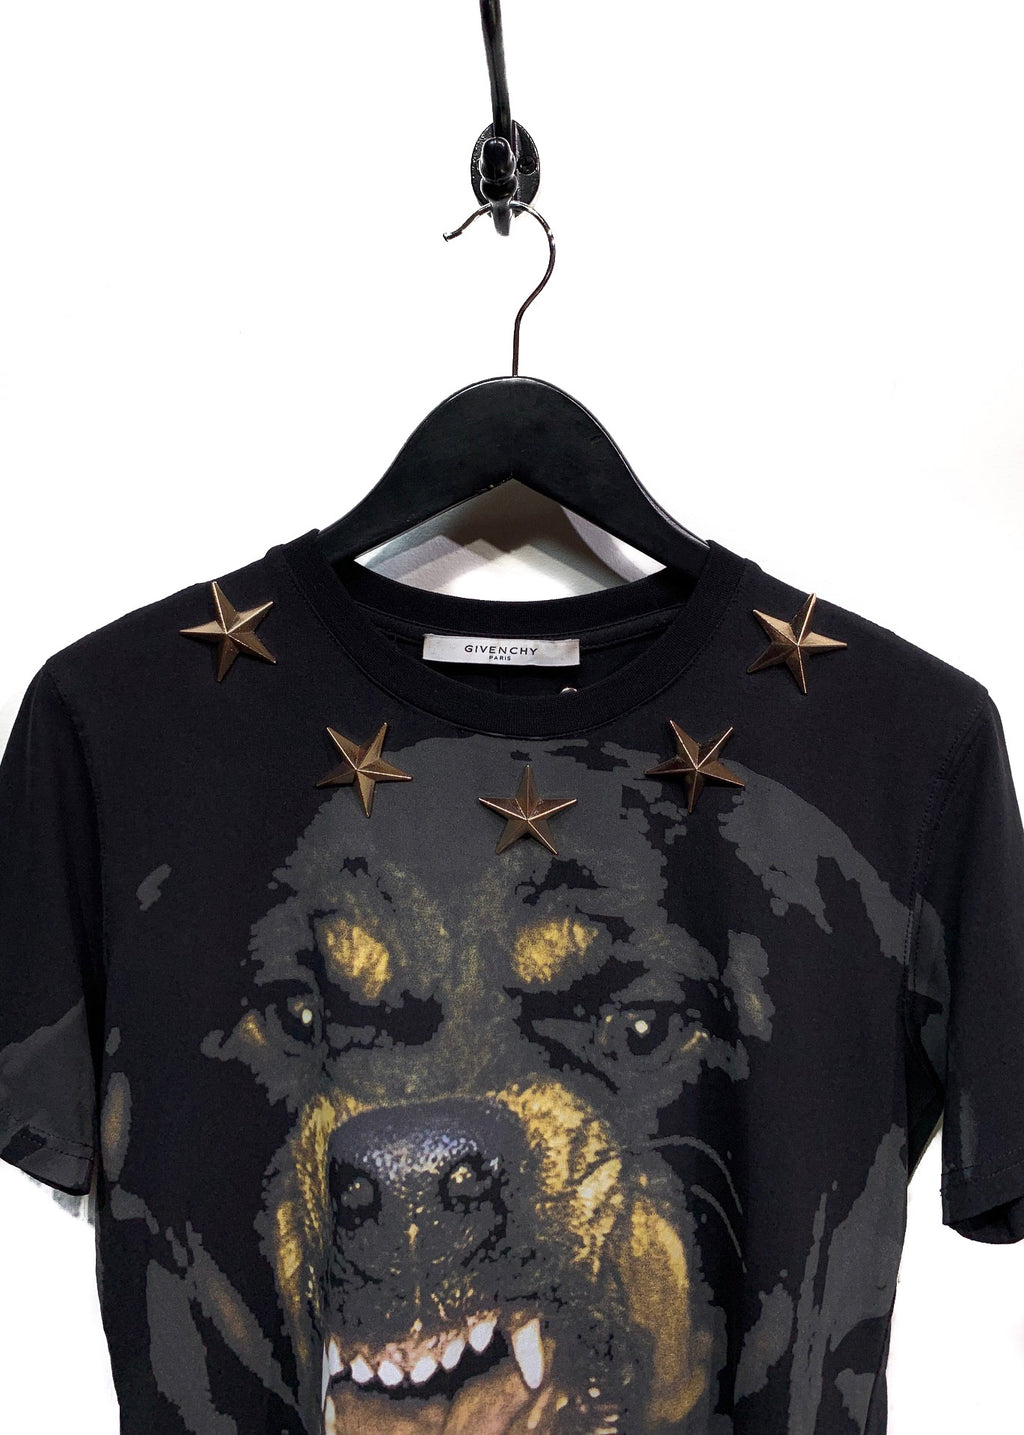 Givenchy Rottweiler Print Metal Star Appliqué T-shirt